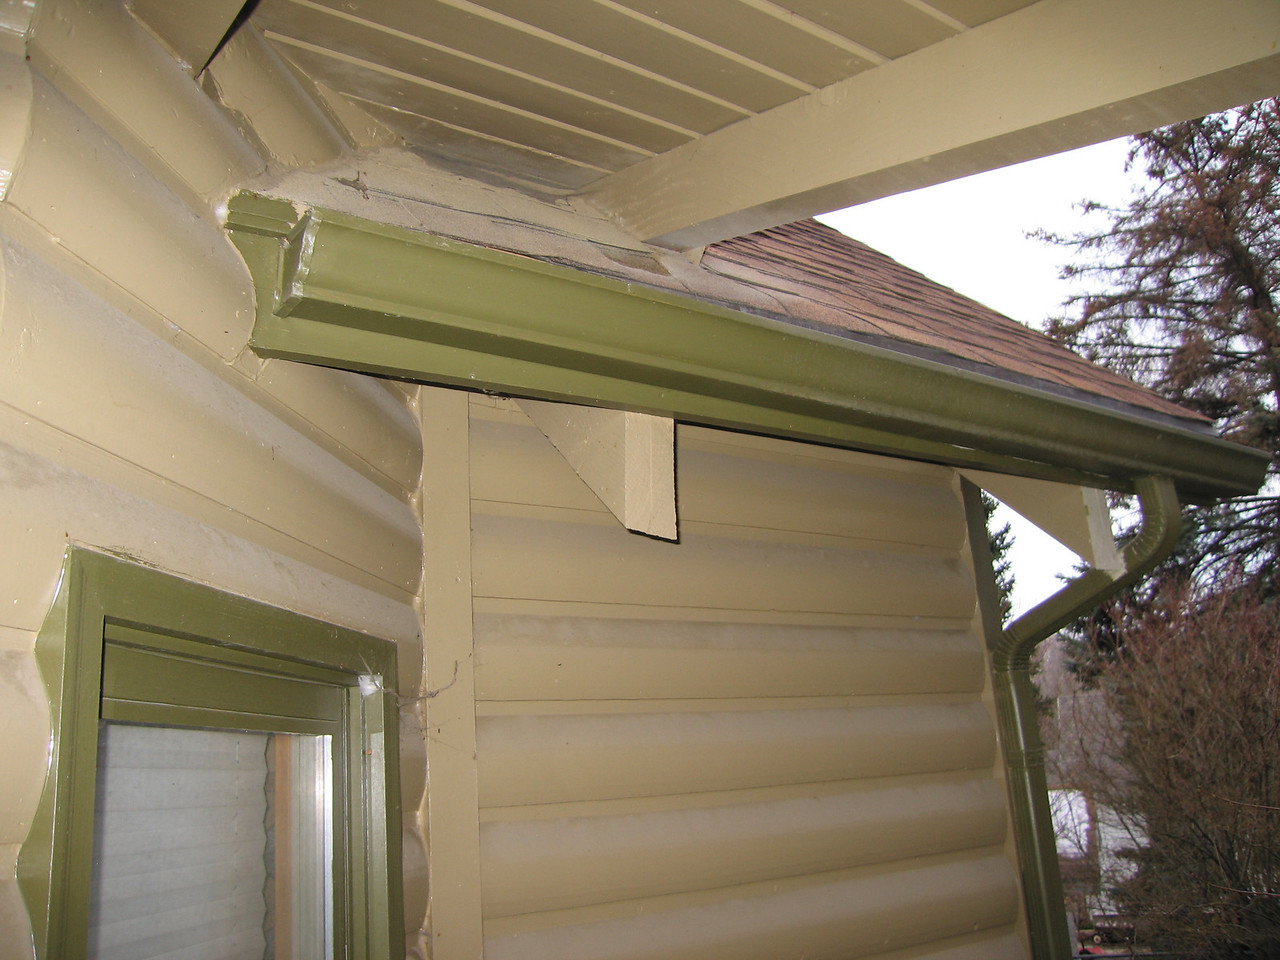 southern-most porch roof beam